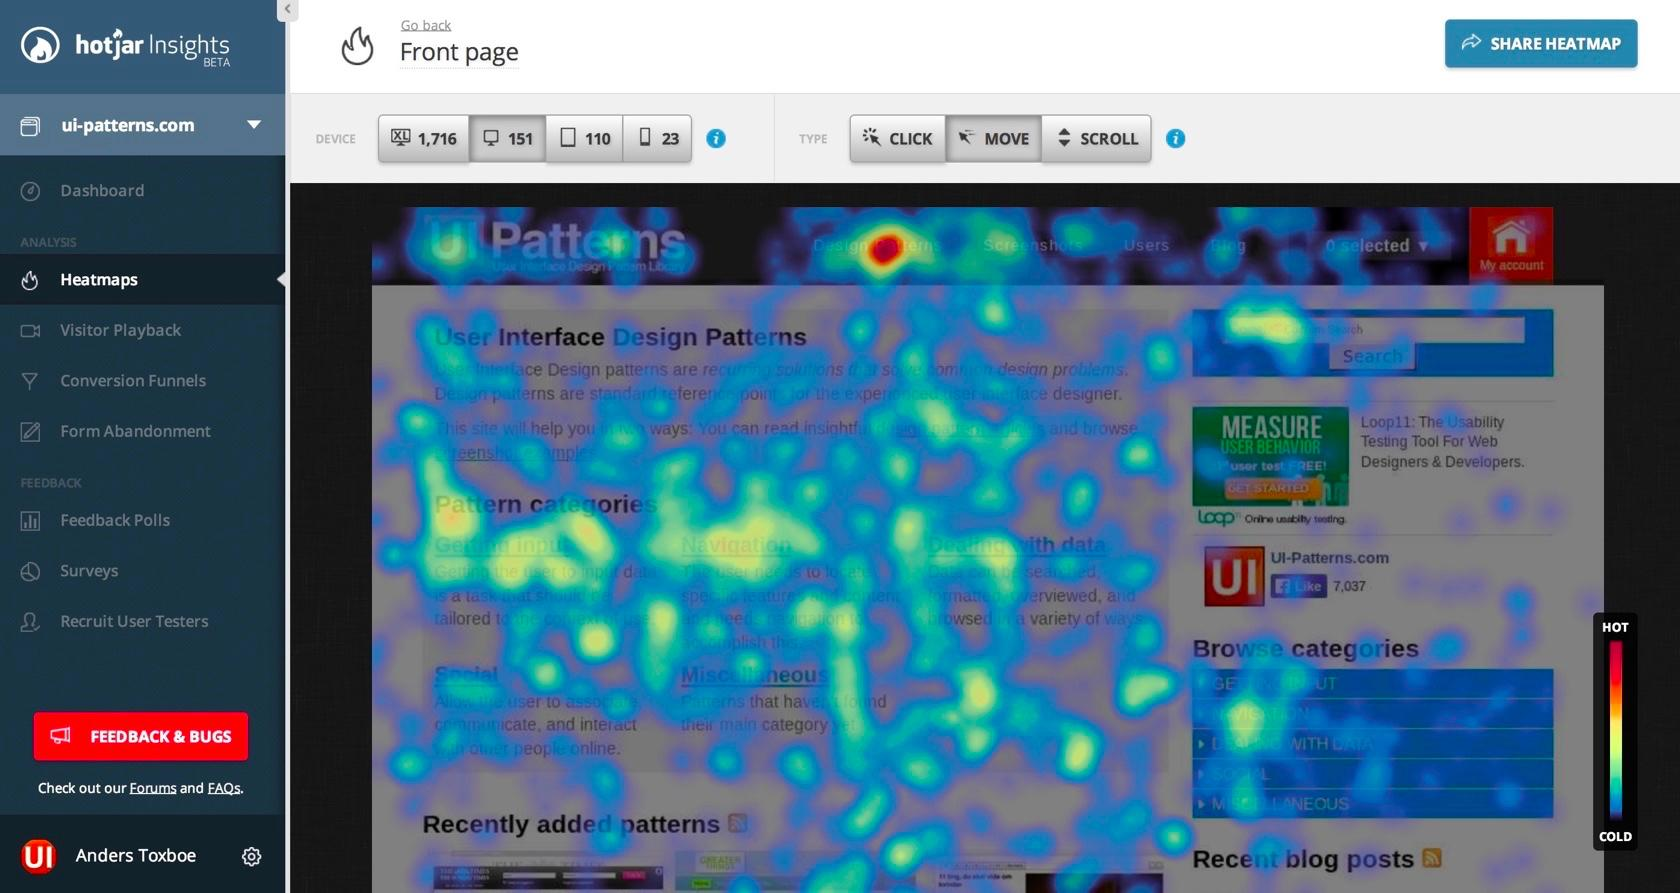 Hotjar is the leading tool for heatmaps that helps the design process.